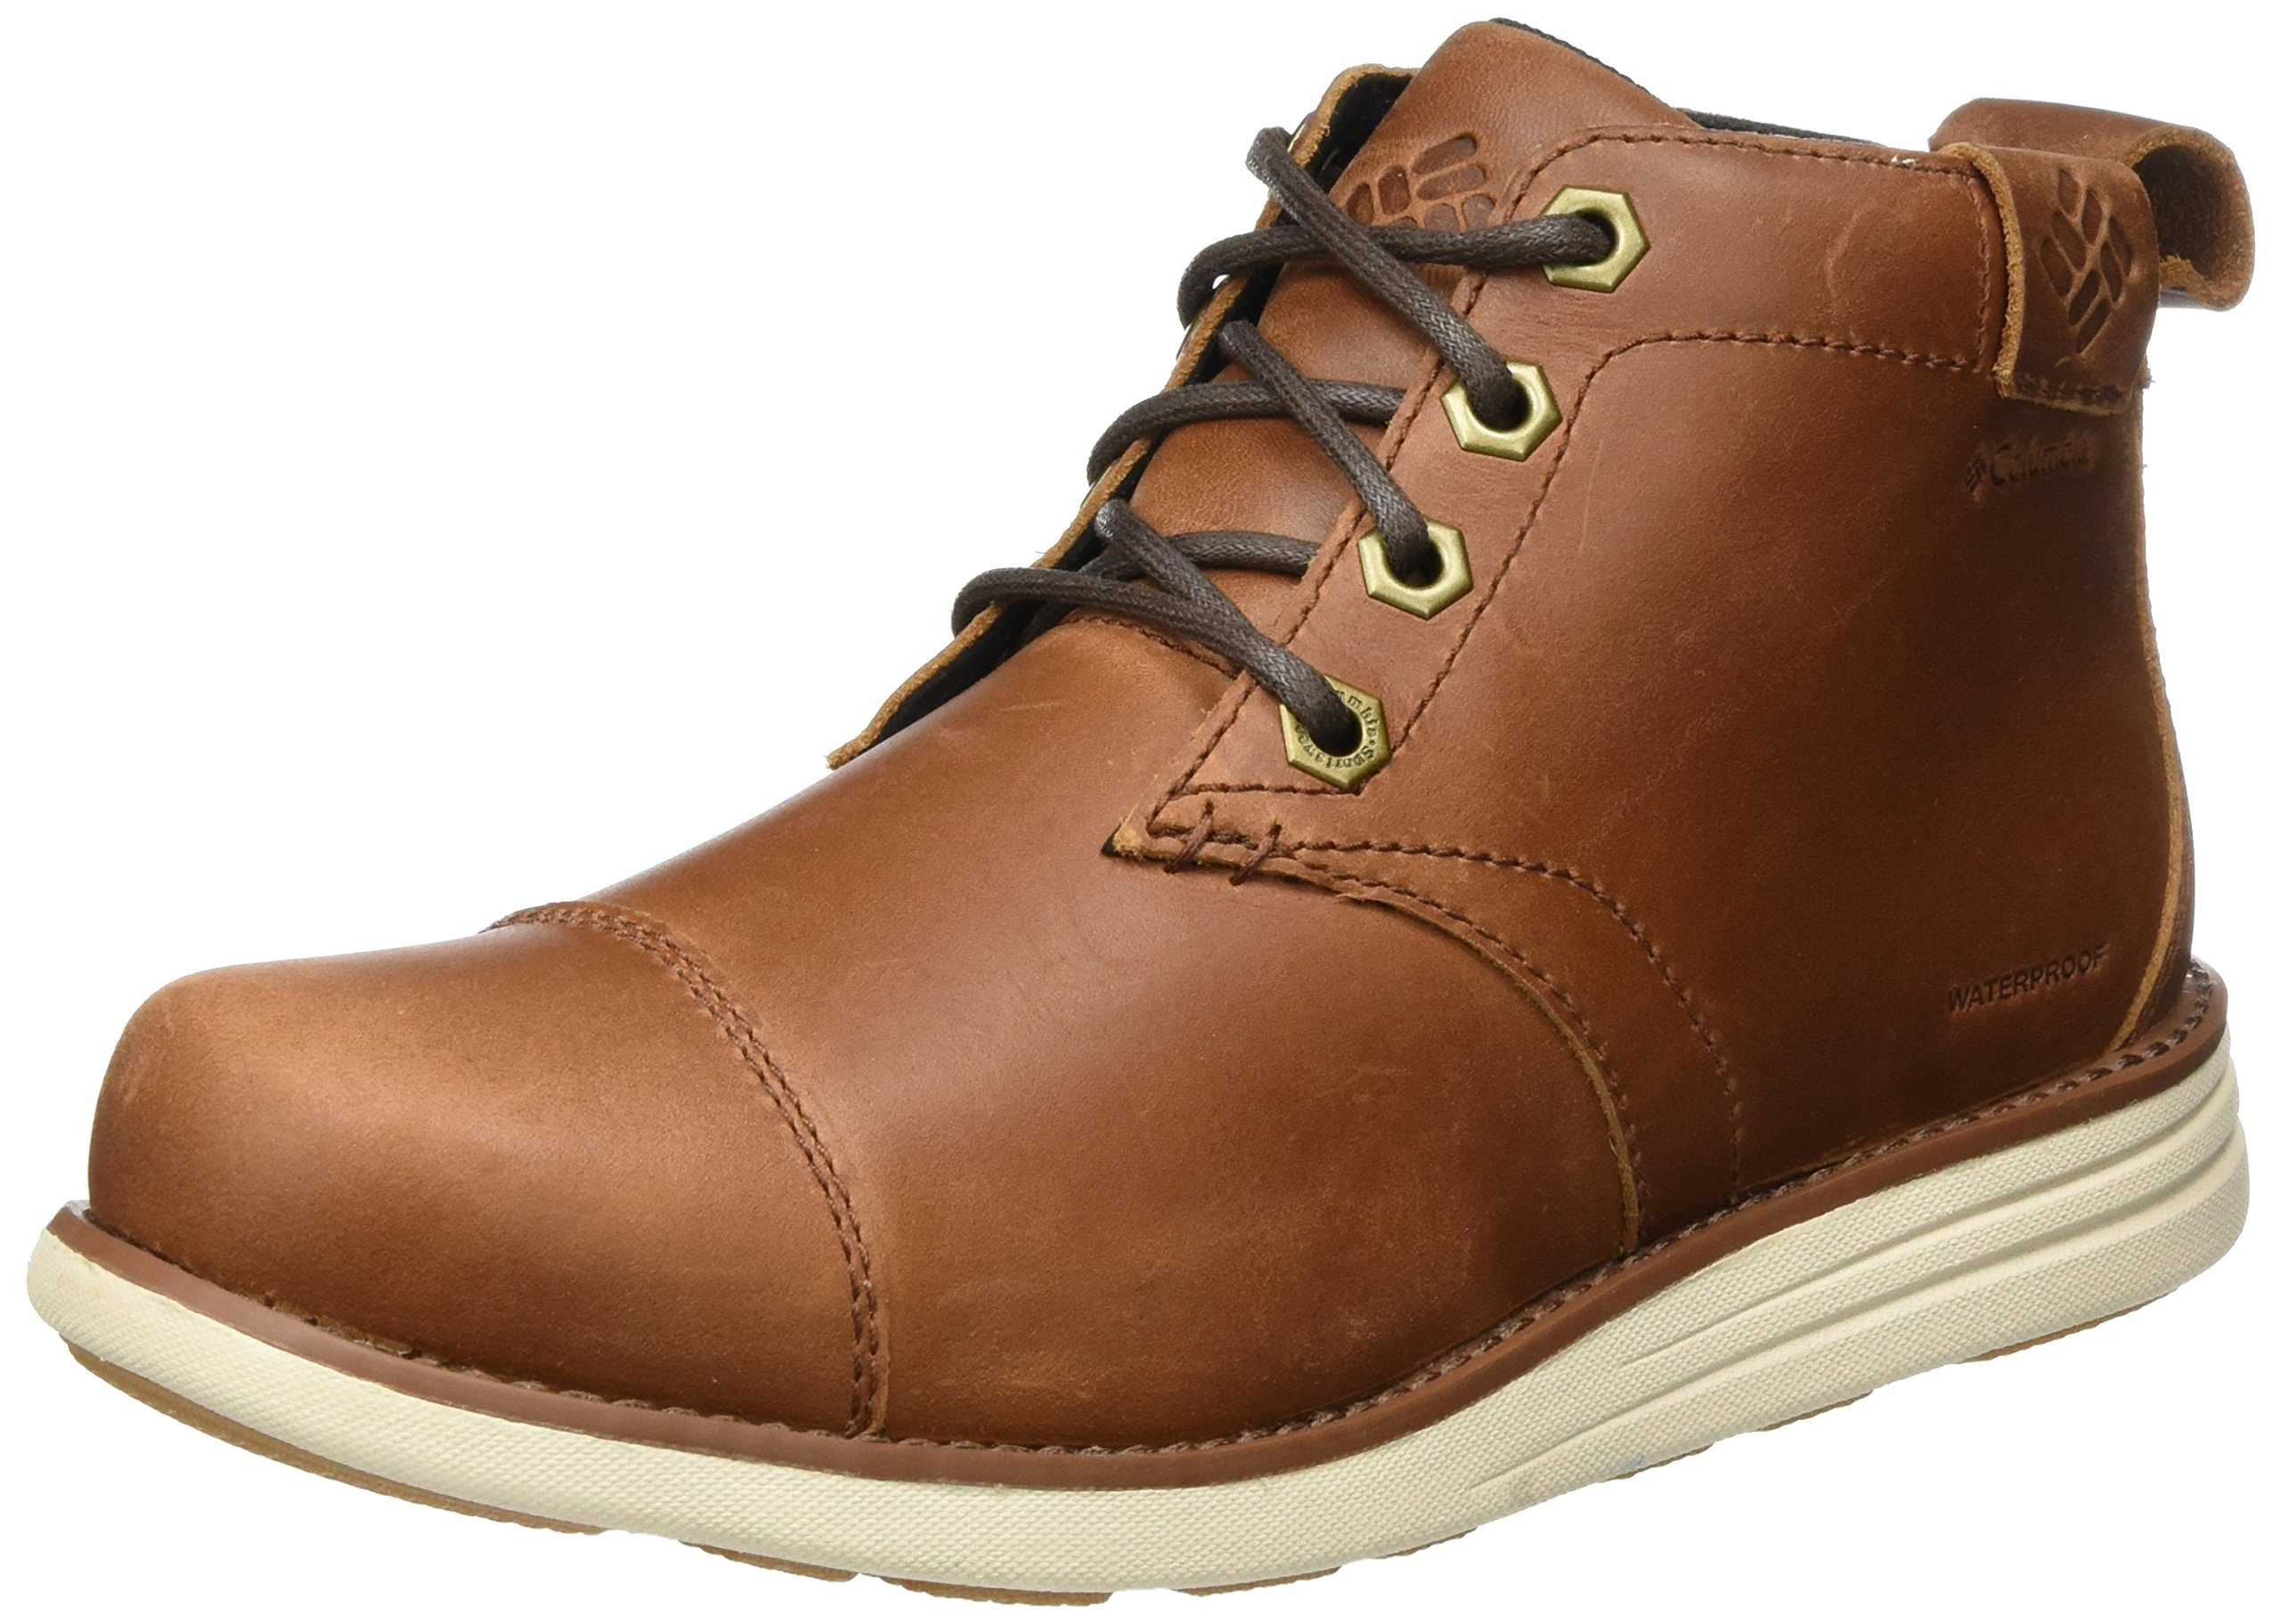 Columbia Men's Irvington Leather Chukka Waterproof Uniform Dress Shoe, Cinnamon, Maple, 11.5 D US